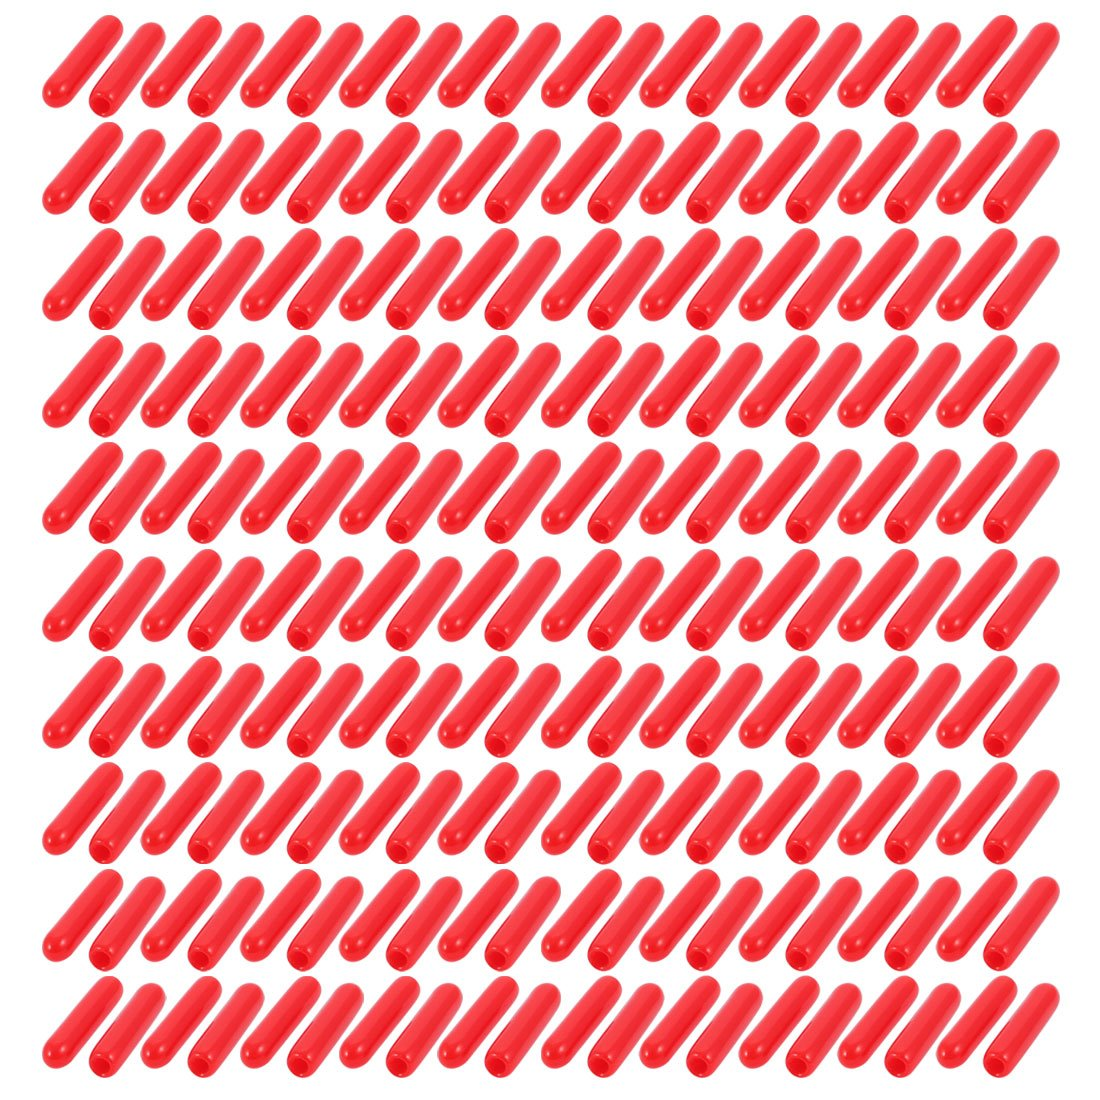 uxcell 200Pcs 2mm Inner Dia PVC Flexible Vinyl End Cap Screw Thread Protector Cover Red